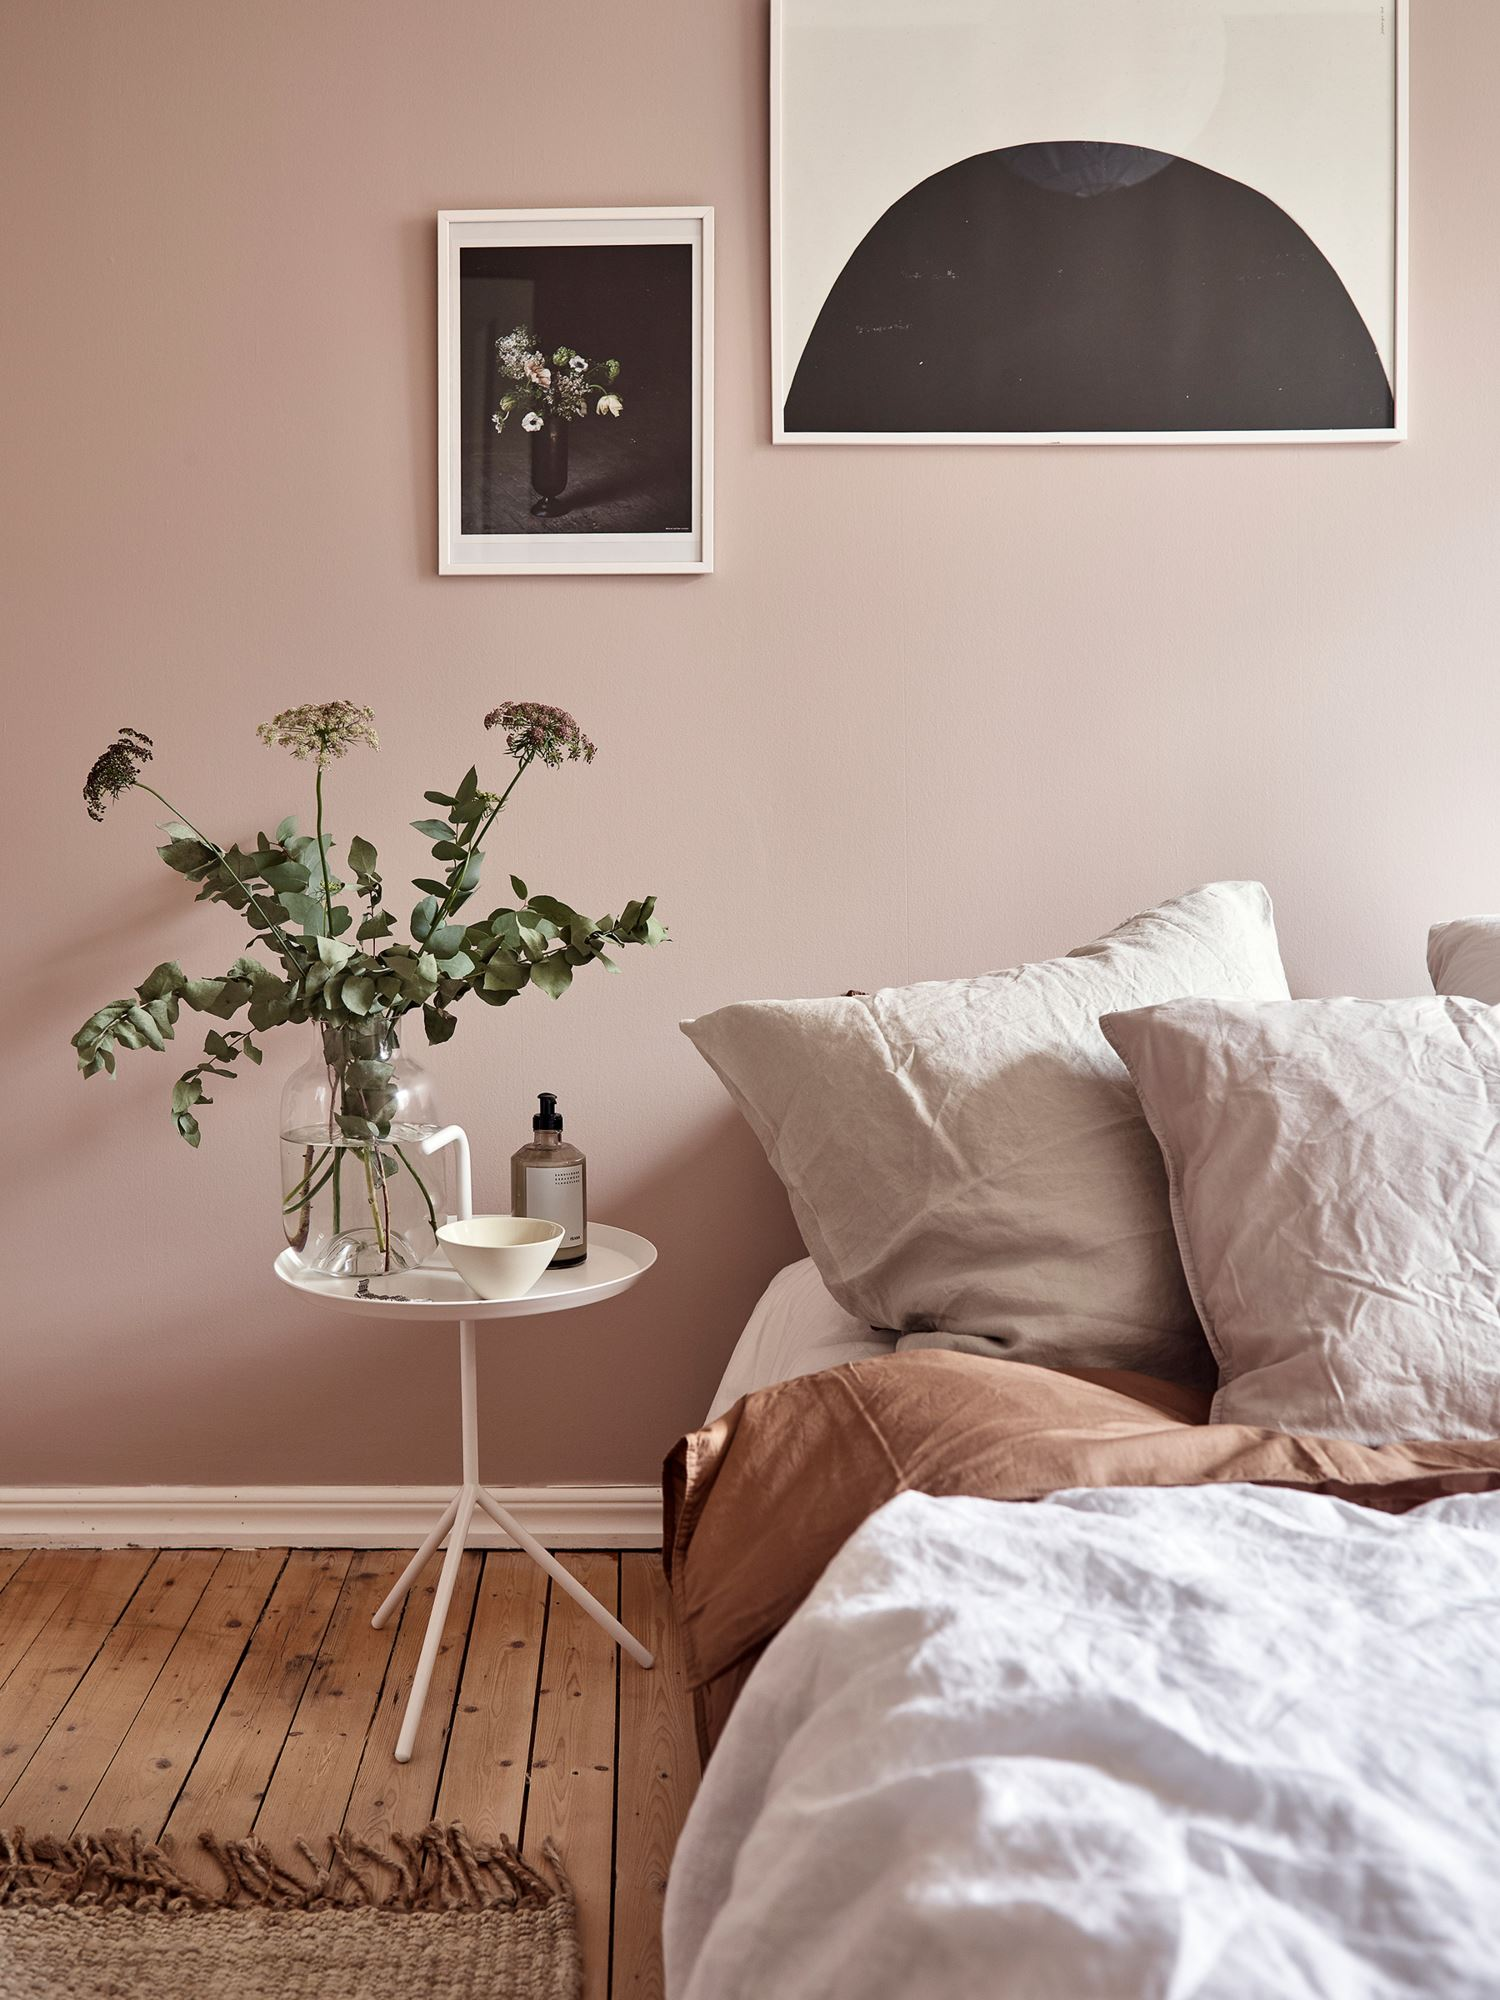 Dusty pink bedroom walls - COCO LAPINE DESIGNCOCO LAPINE ...